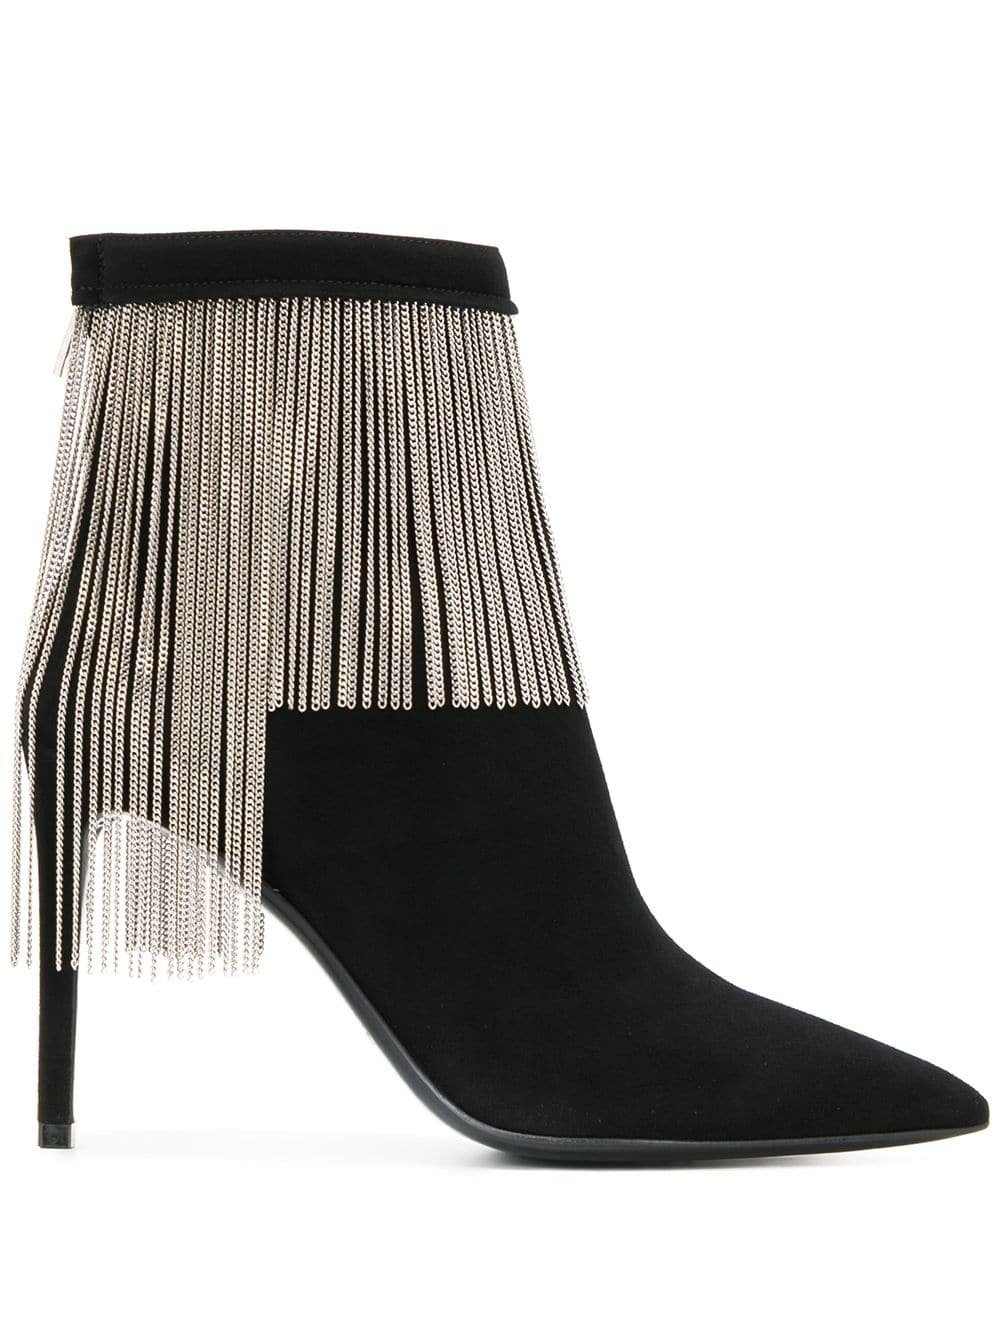 Balmain Mercy chain suede boots £1,390 - Shop Online. Same Day Delivery in London